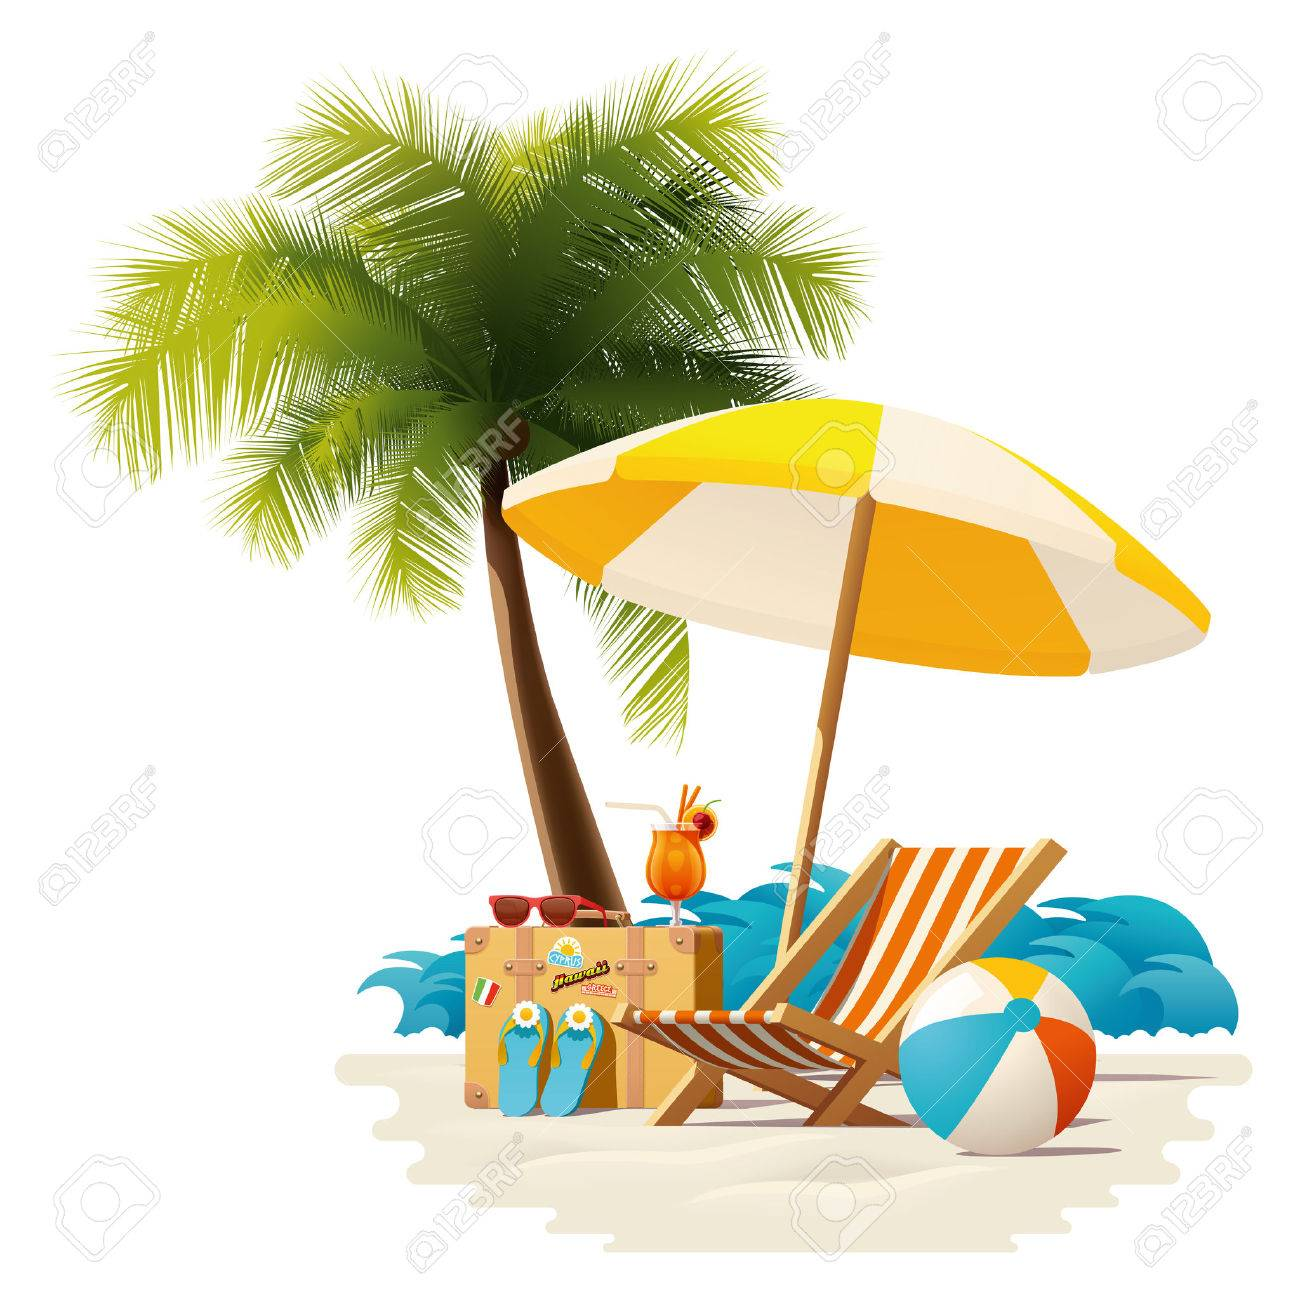 Sonnenschirm strand comic  Detailed Vector Icon Representing Deck Chair, Travel Suitcase ...